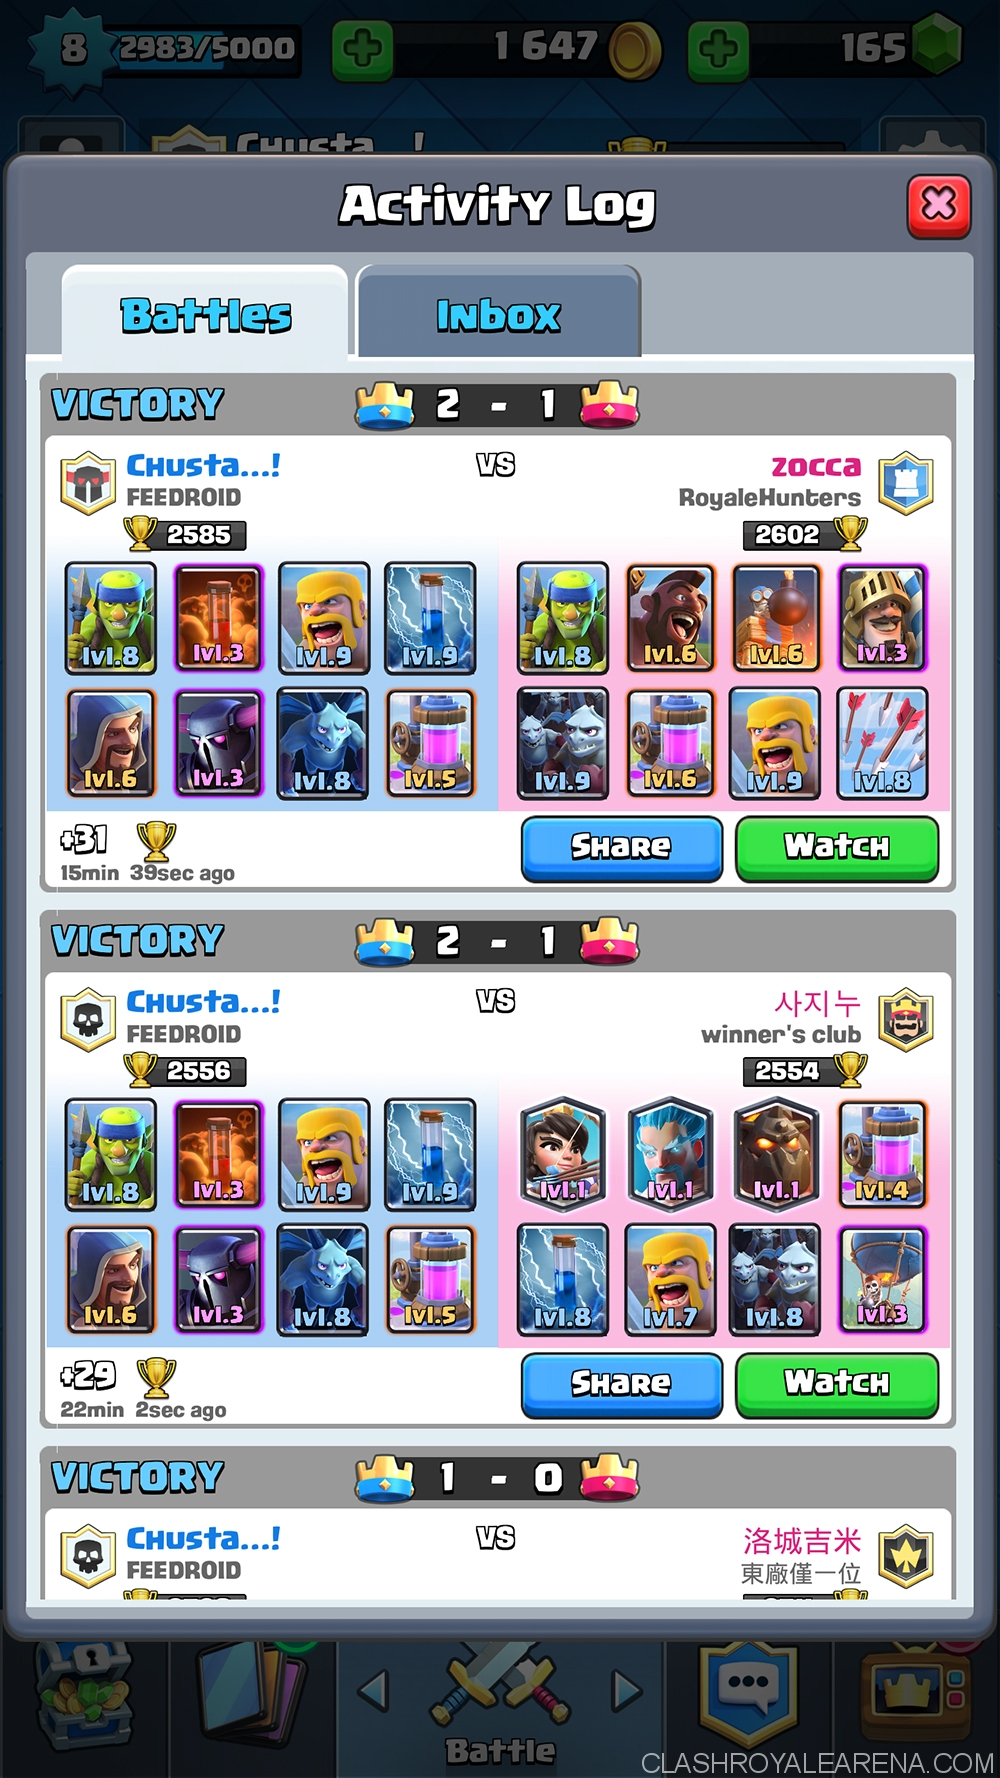 Glorious p e k k a deck for arena 7 clash royale guides for Deck pekka arene 6